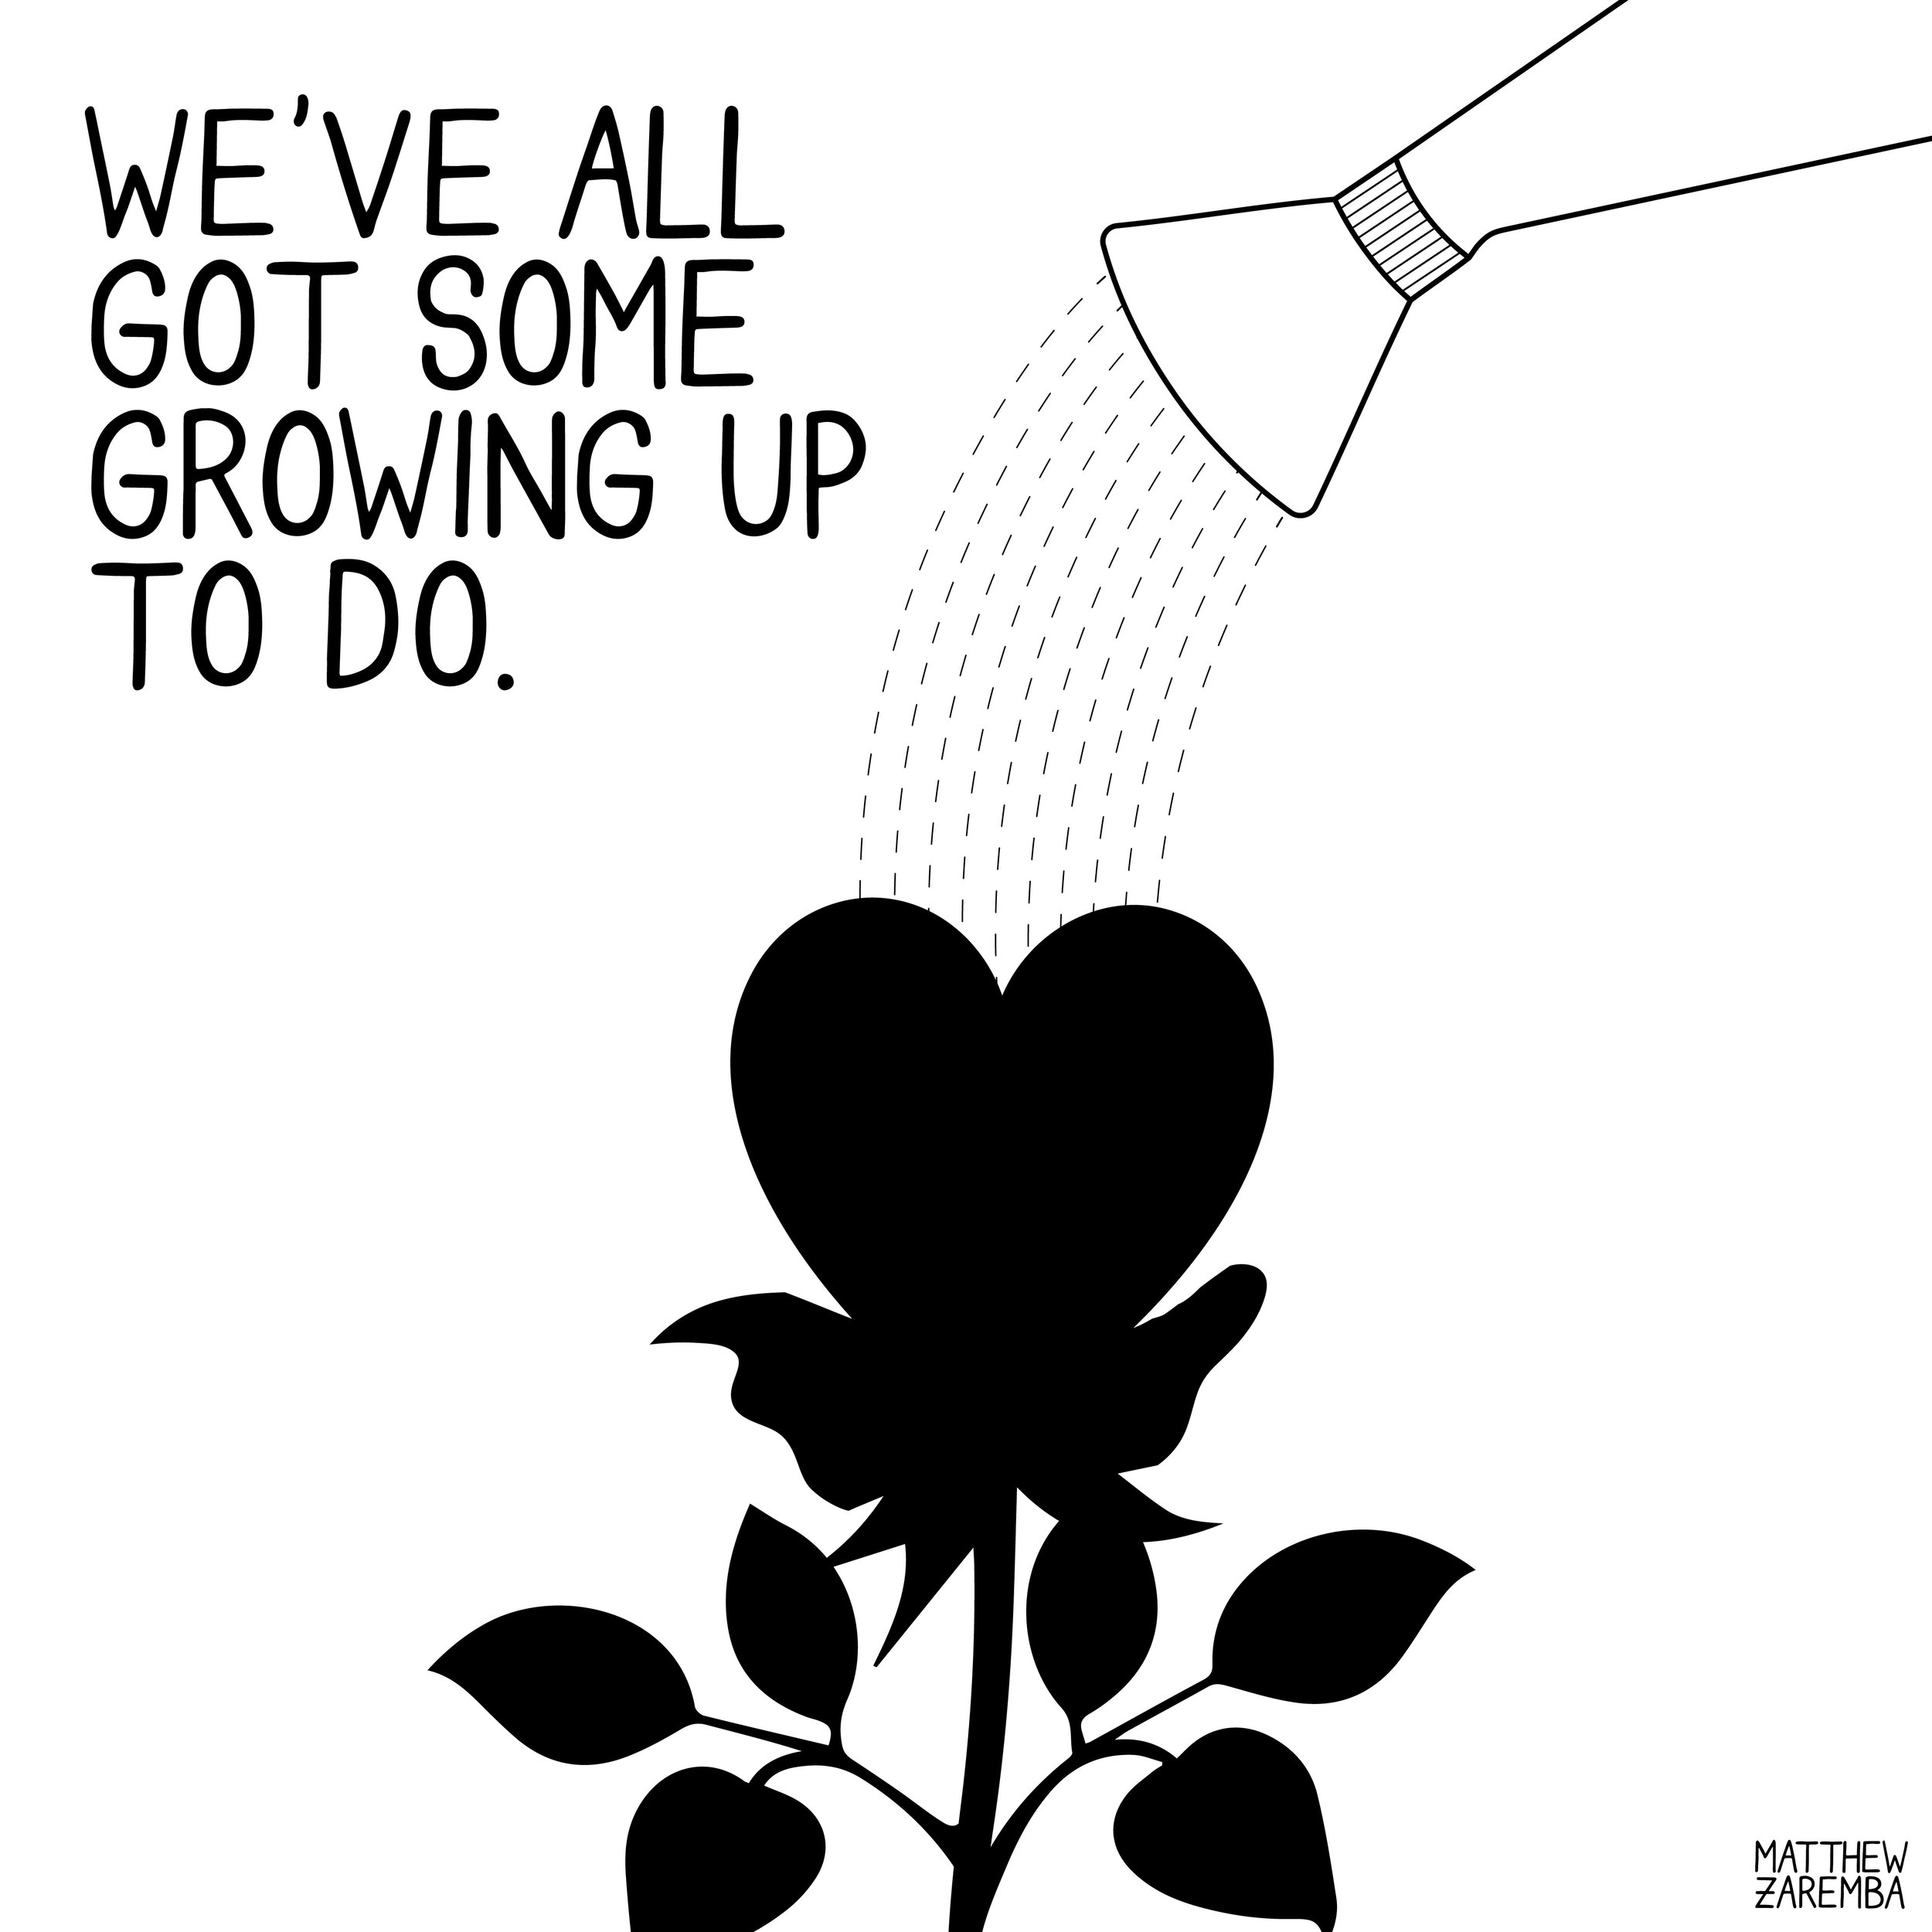 growingup-01.jpg